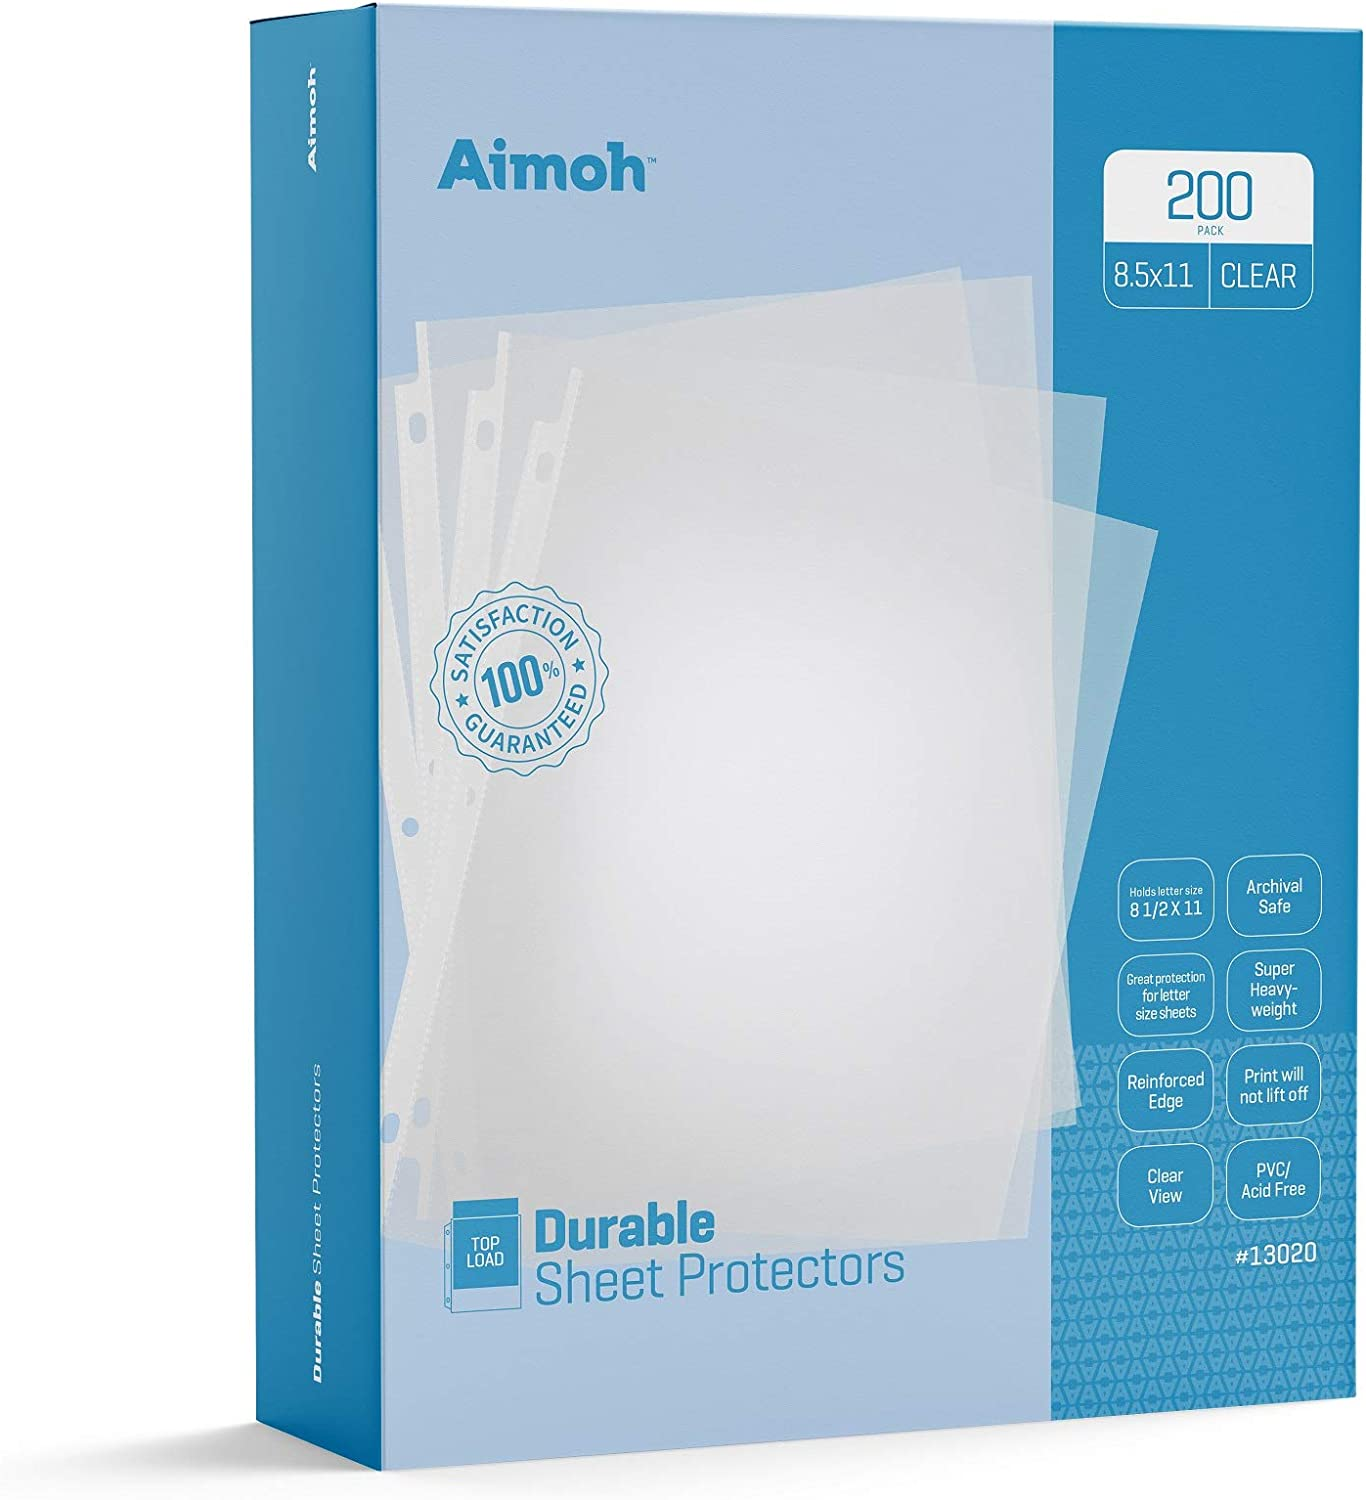 Aimoh Durable Clear Presentation Sheet Protectors 200-Count – Page Size – Fits 8.5 x 11 Paper – Reinforced Edge – 3 Hole Design – 9.25 x 11.25 – Top Load (13200)